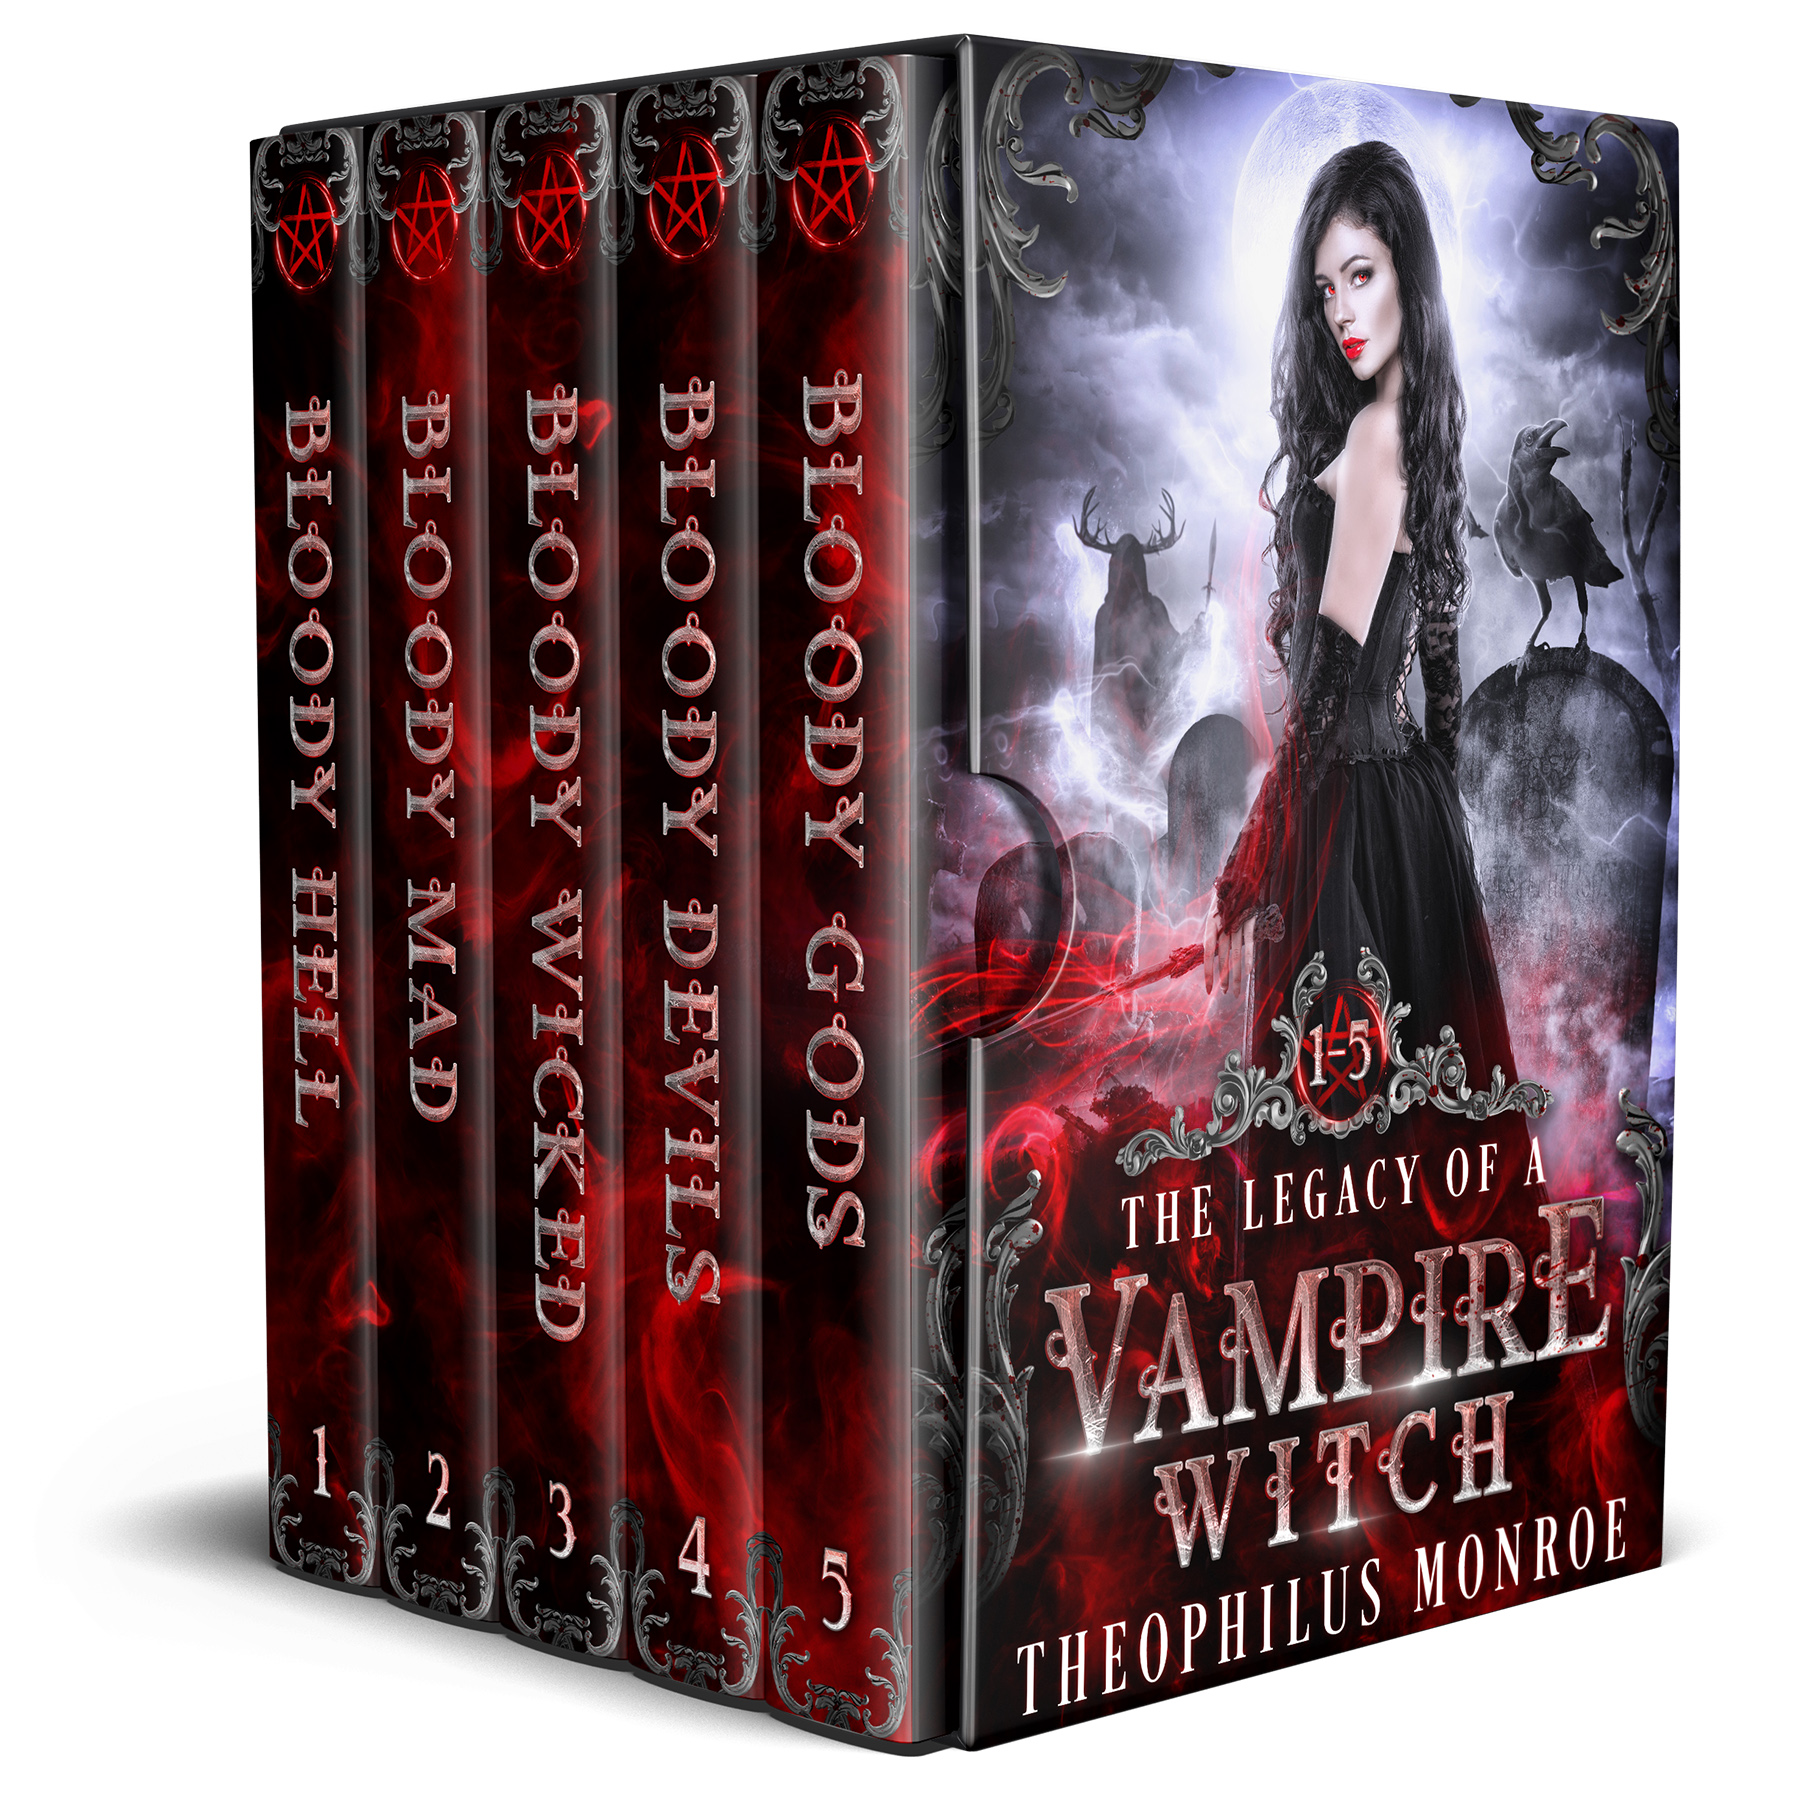 The Legacy of a Vampire Witch (Complete Set)